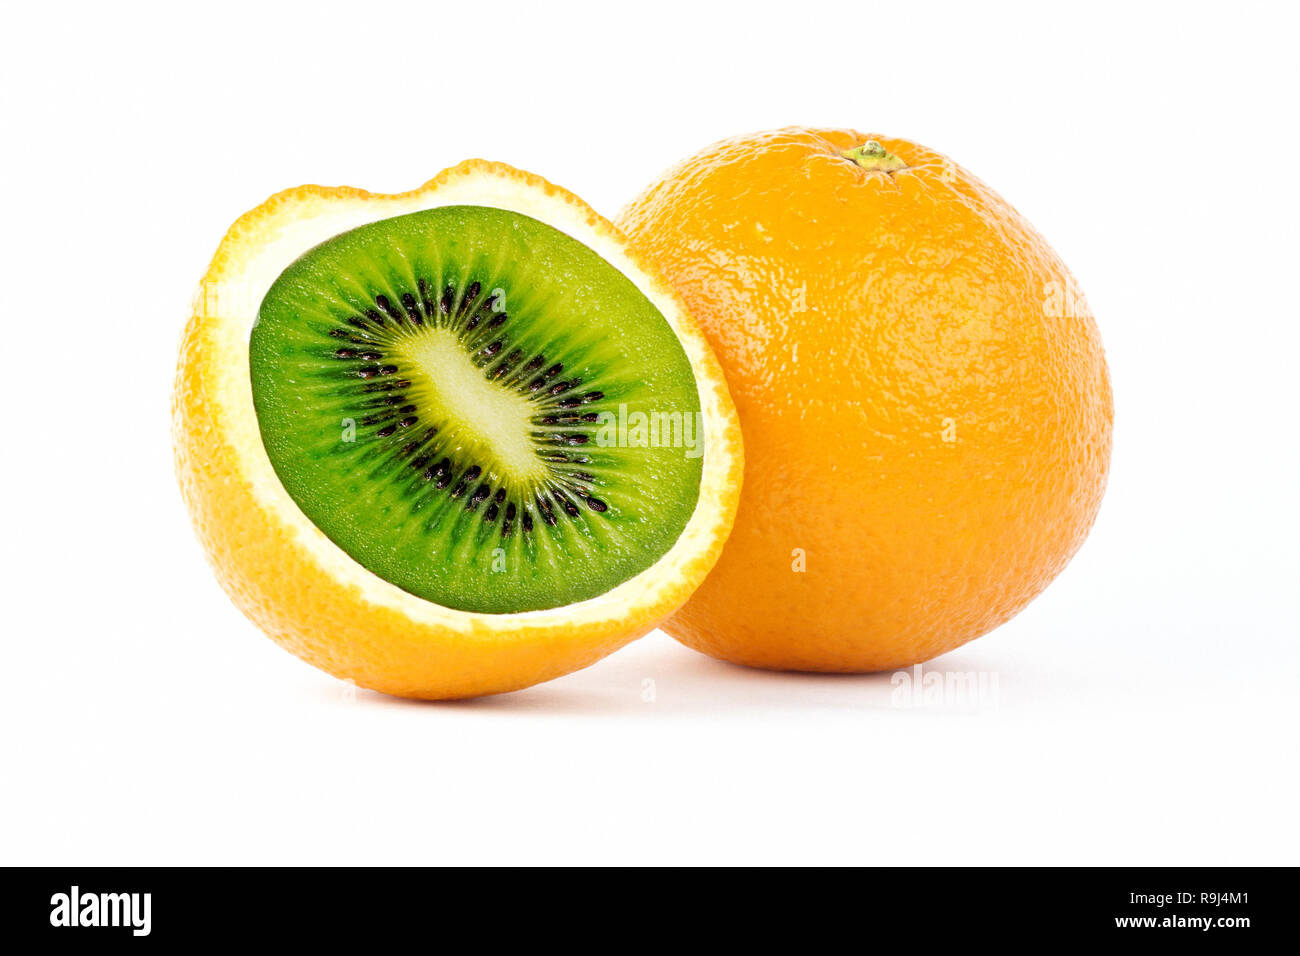 Creative photo manipulation of sliced orange with green kiwi inside isolated on white background - Stock Image